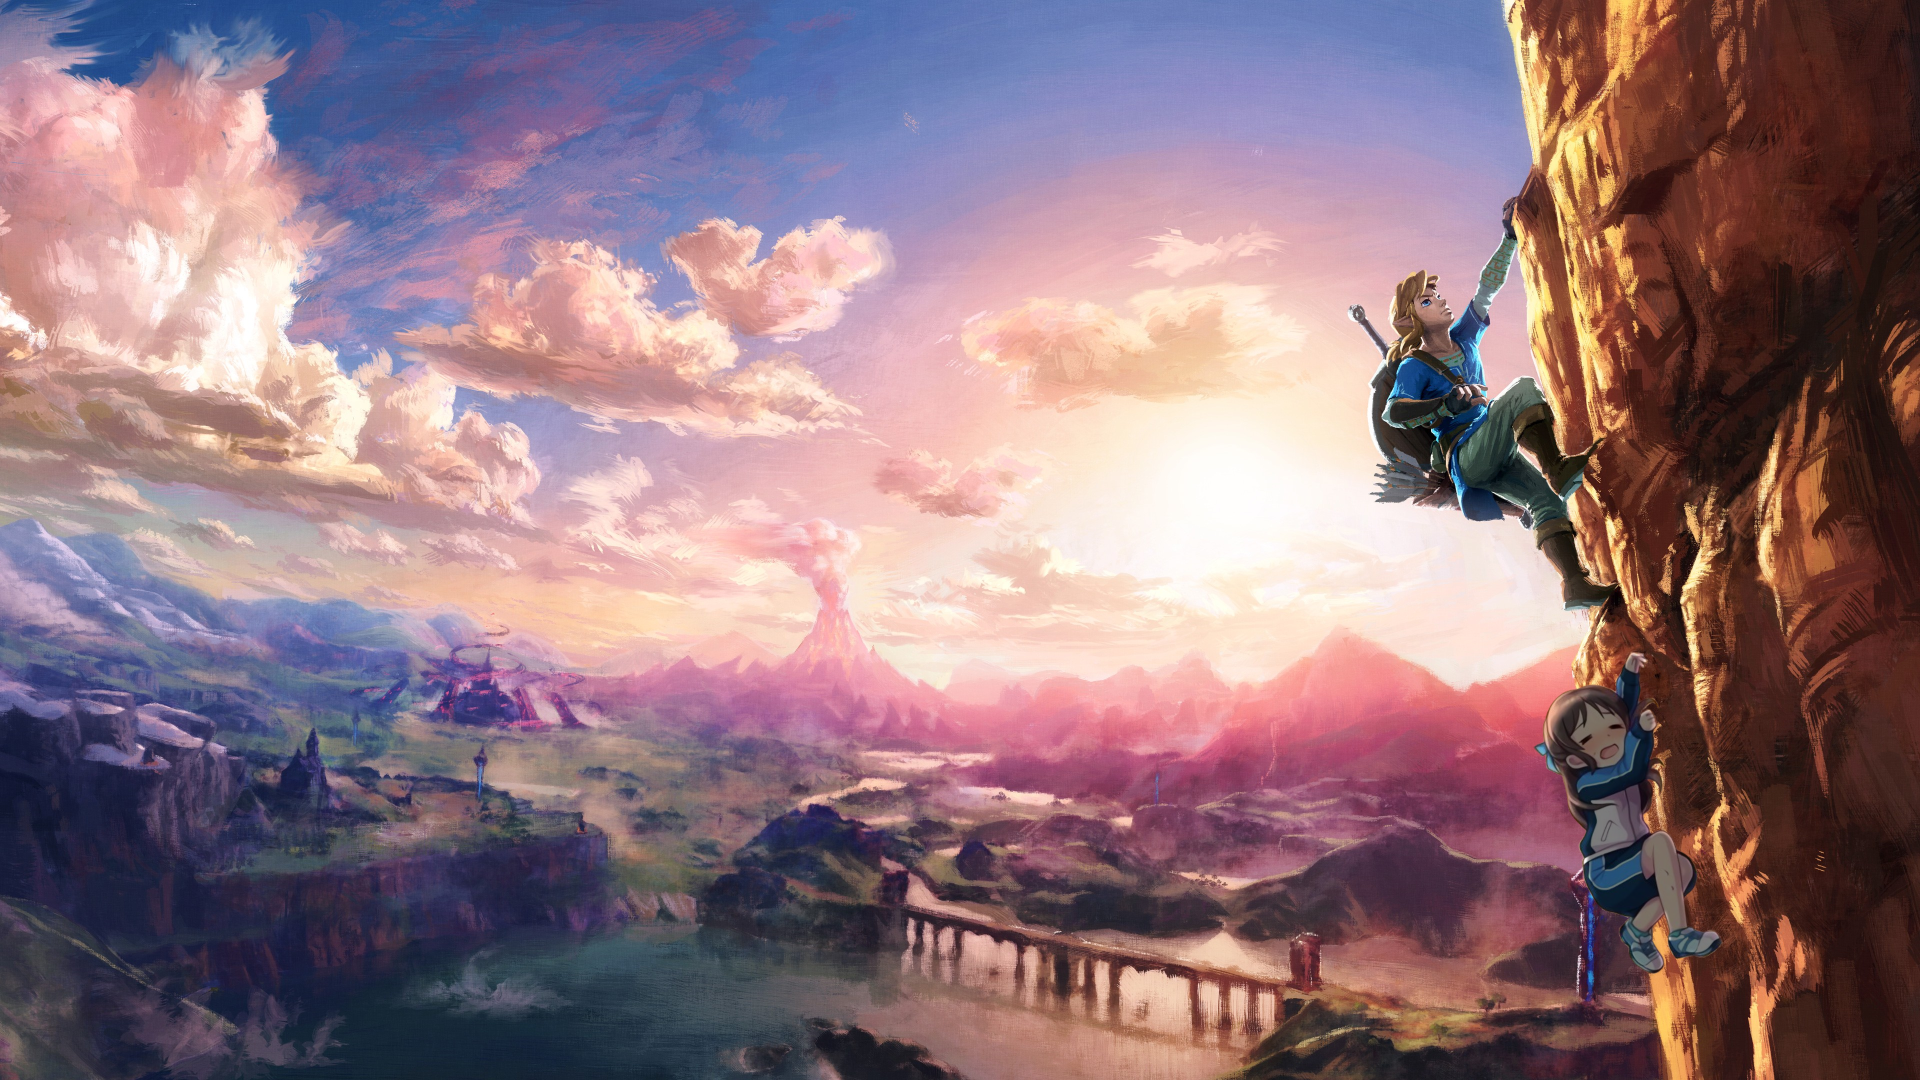 Alice climbing with link alice chan the legend of zelda breath of the wild the legend of zelda four swords voltagebd Image collections